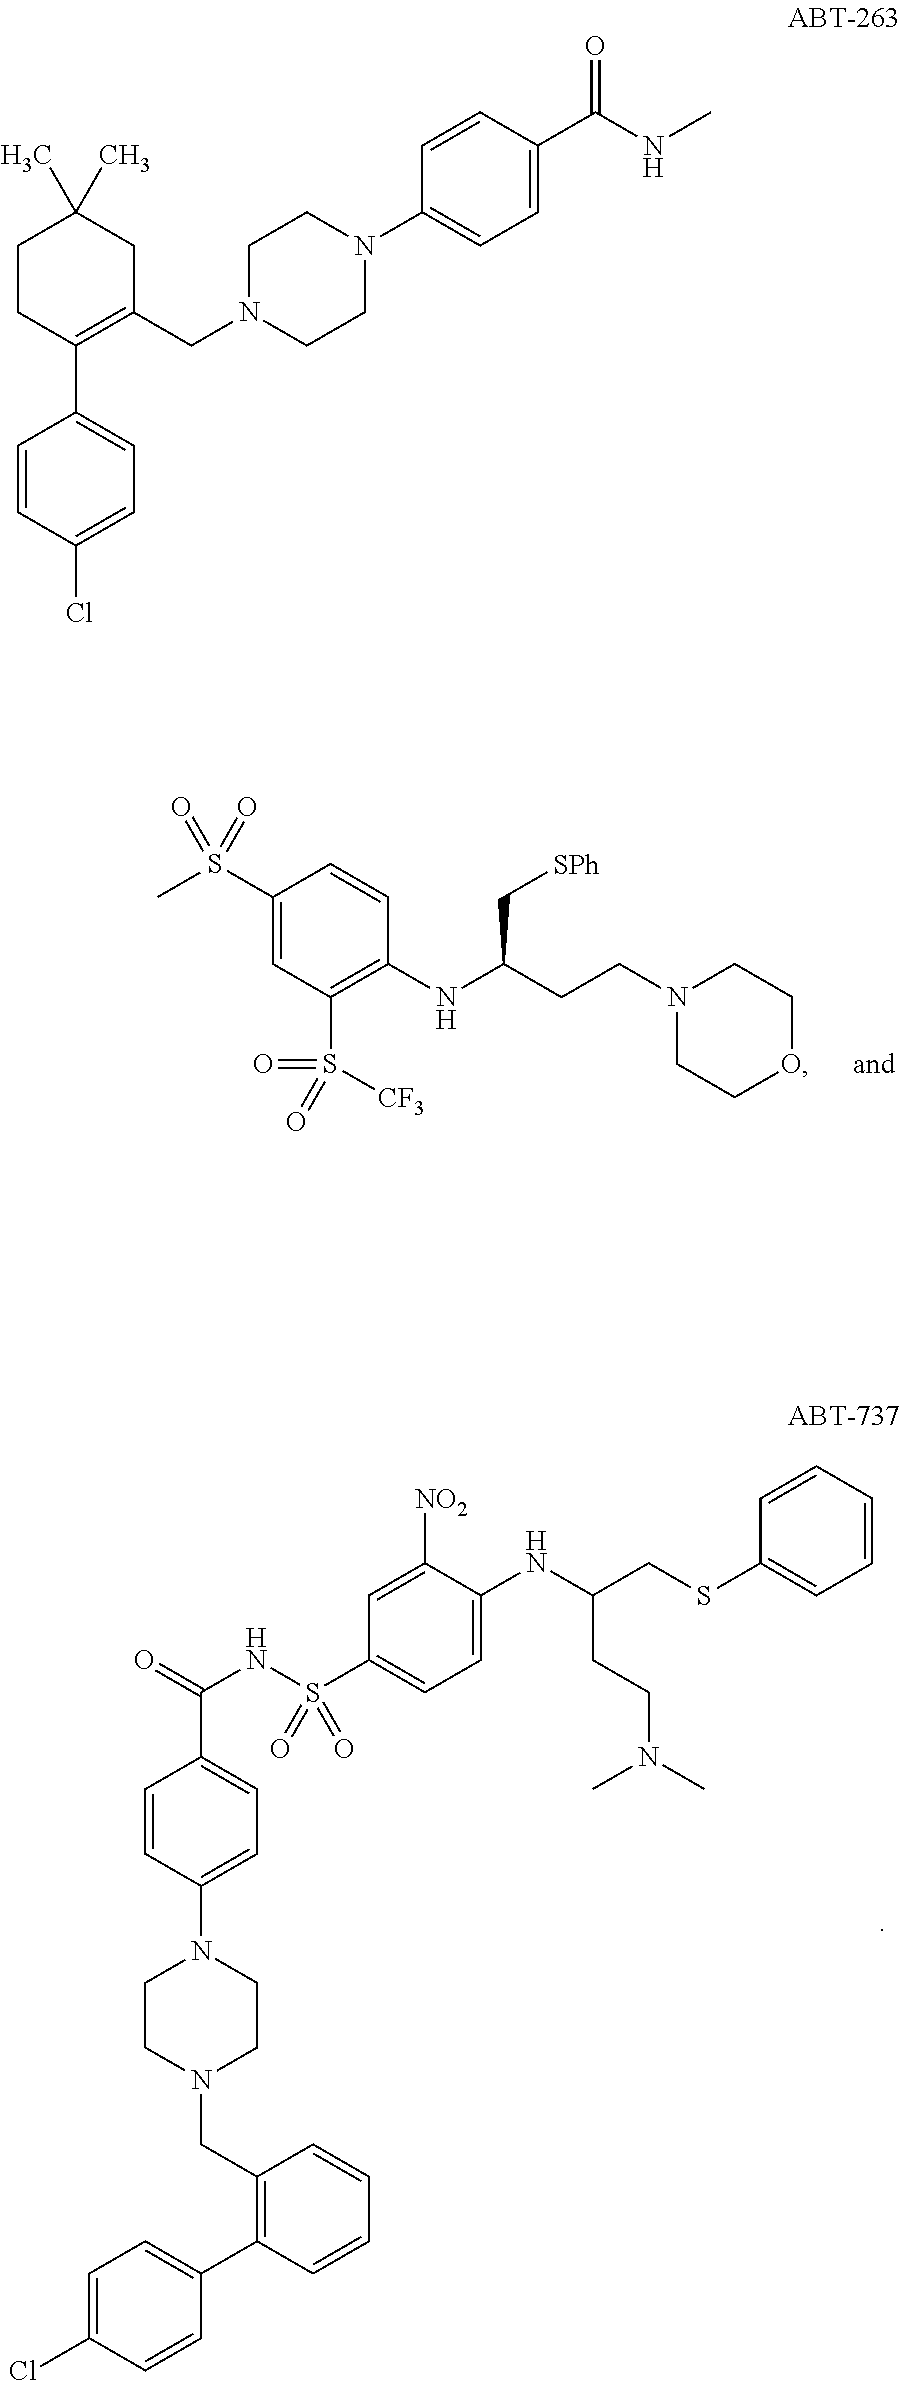 us9737535b2 methods for treating cancer using tor kinase inhibitor Asco Transfer Switch Schematic figure us09737535 20170822 c00023